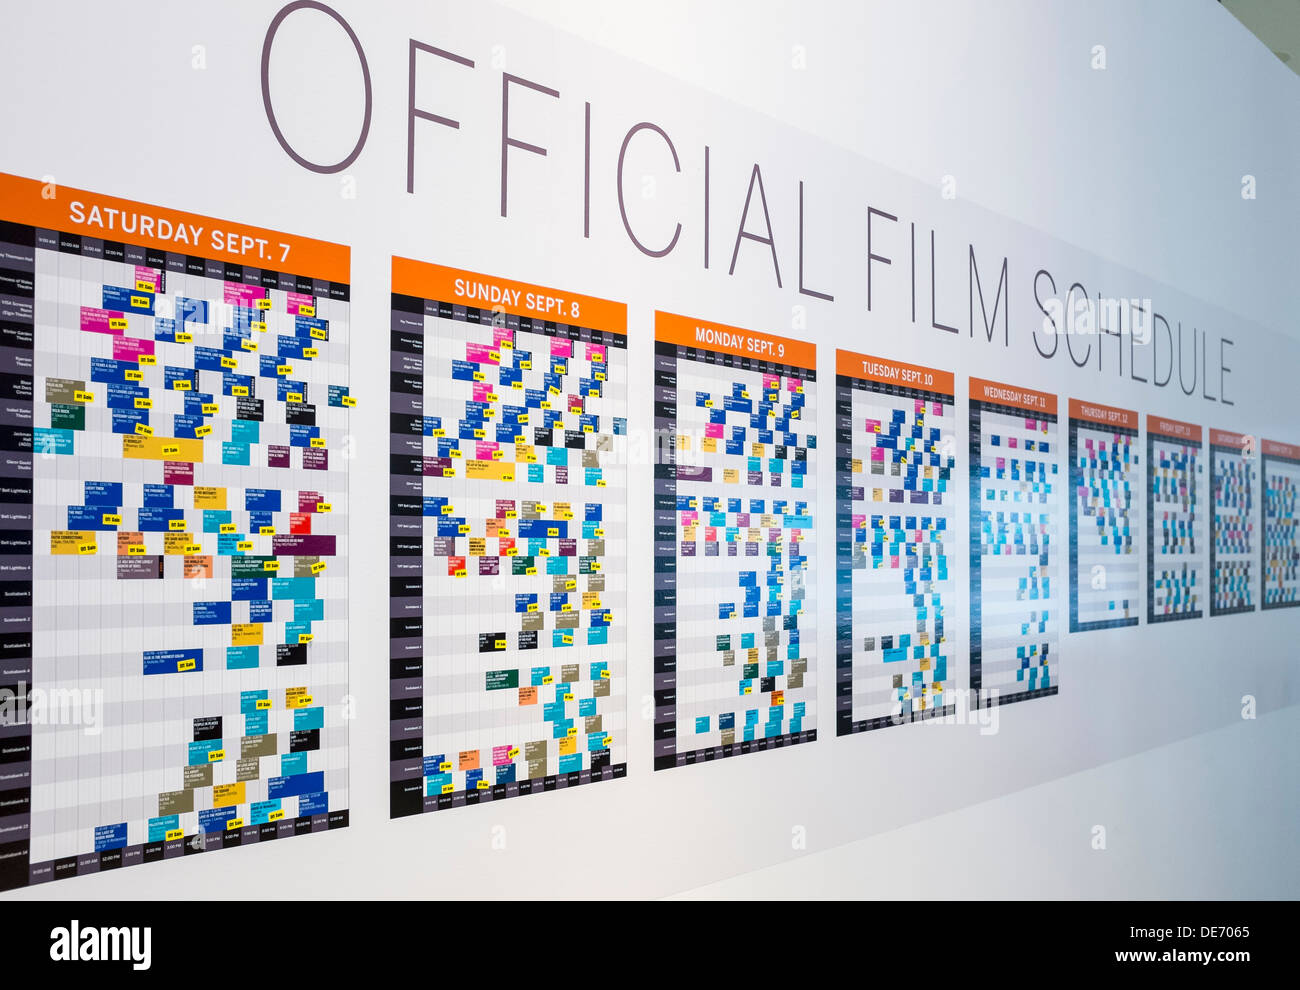 The Official Film Schedule at the TIFF Bell Lightbox during the 2013 Toronto International Film Festival - Stock Image